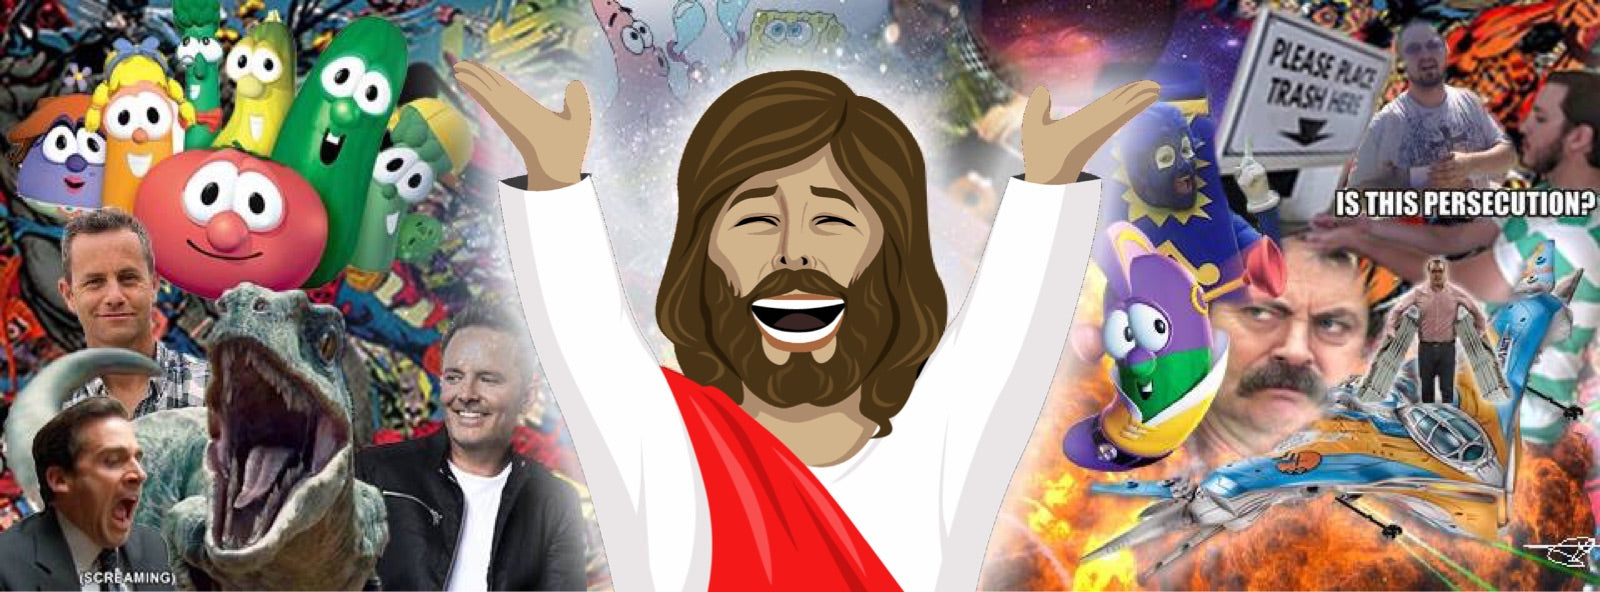 10 Other Christian Meme Accounts You Should Be Following